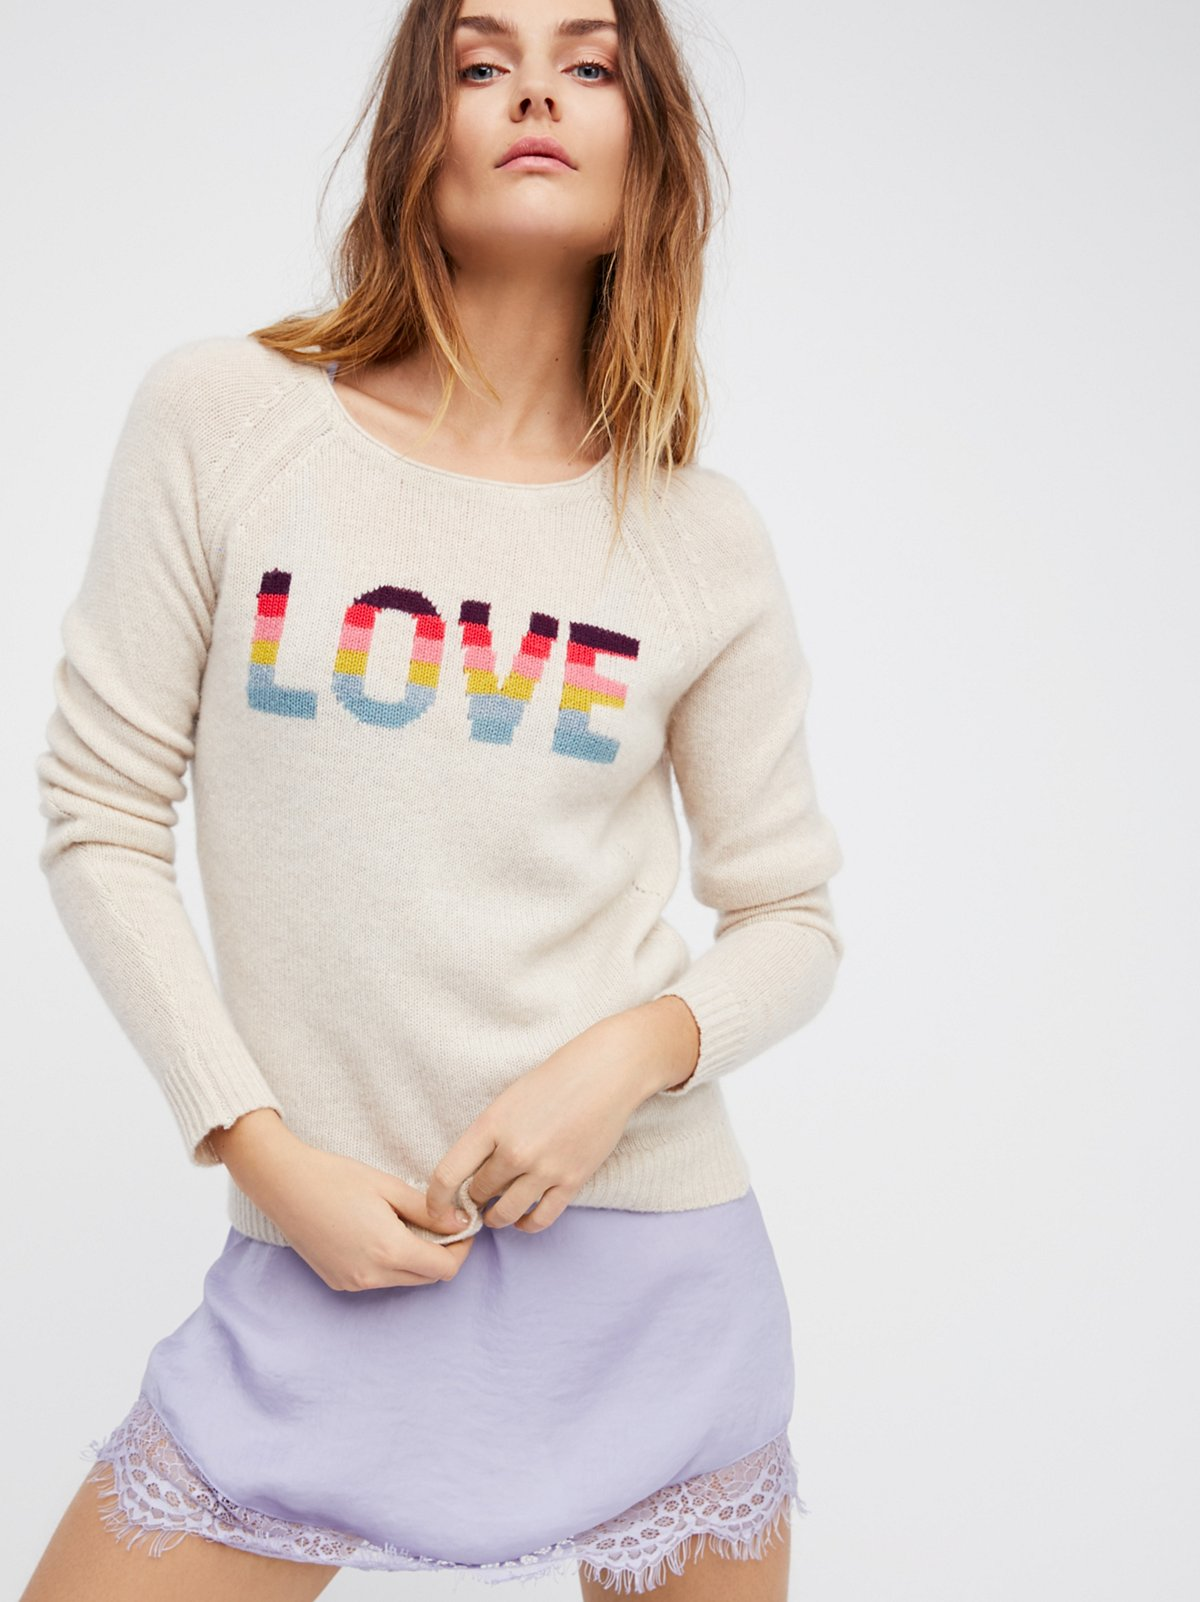 Baly Bis Sweater